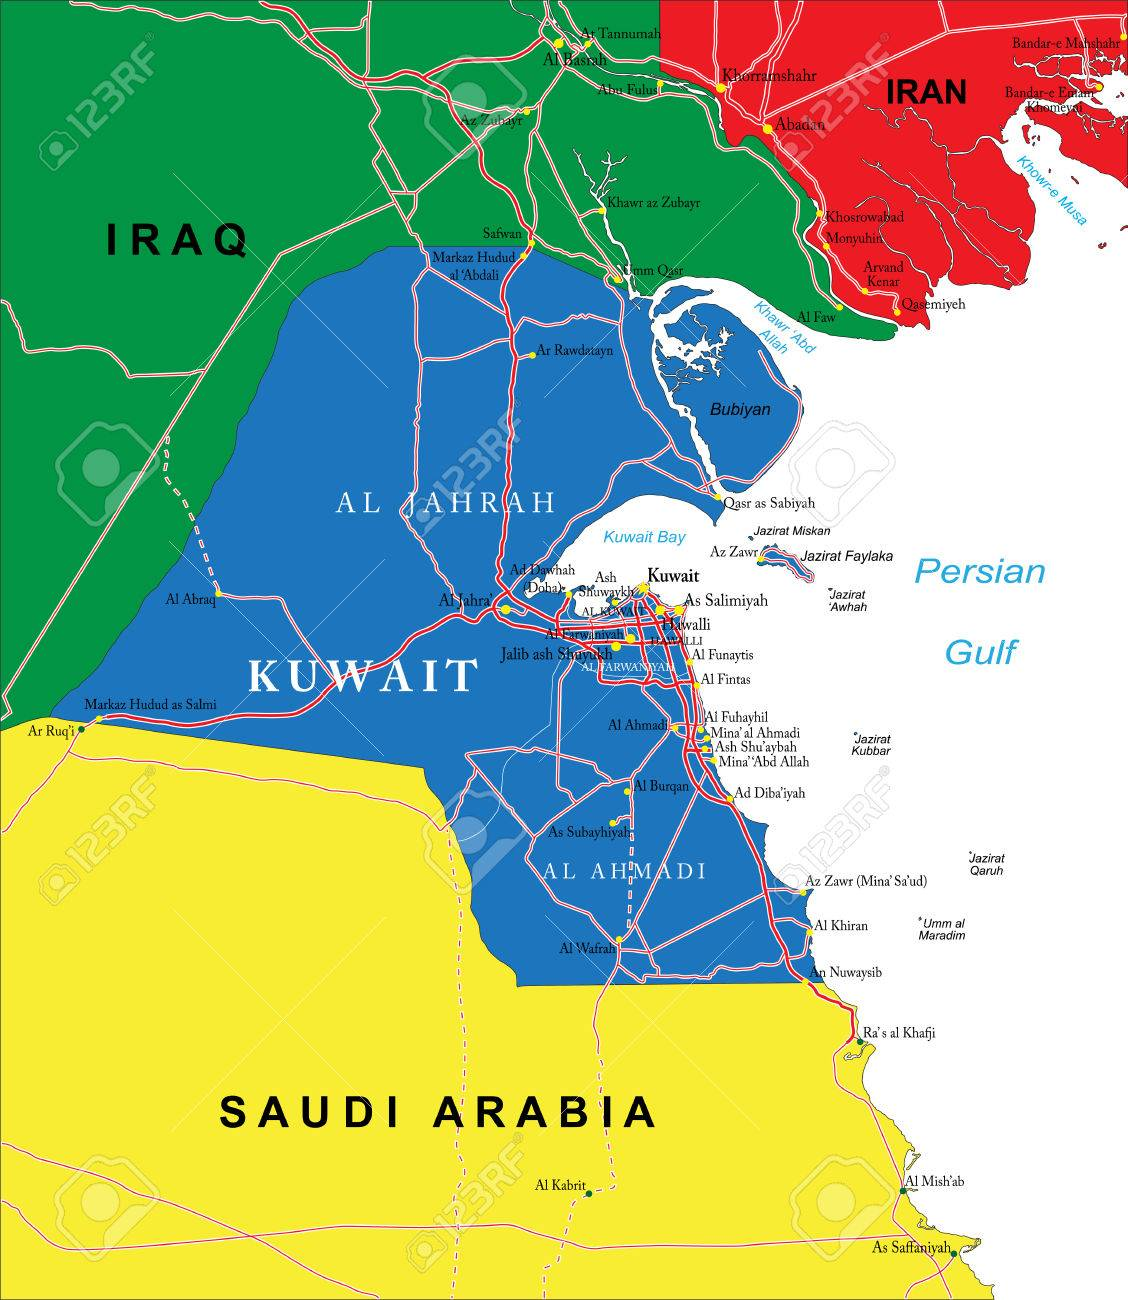 Kuwait Map Royalty Free Cliparts Vectors And Stock Illustration - Kuwait map